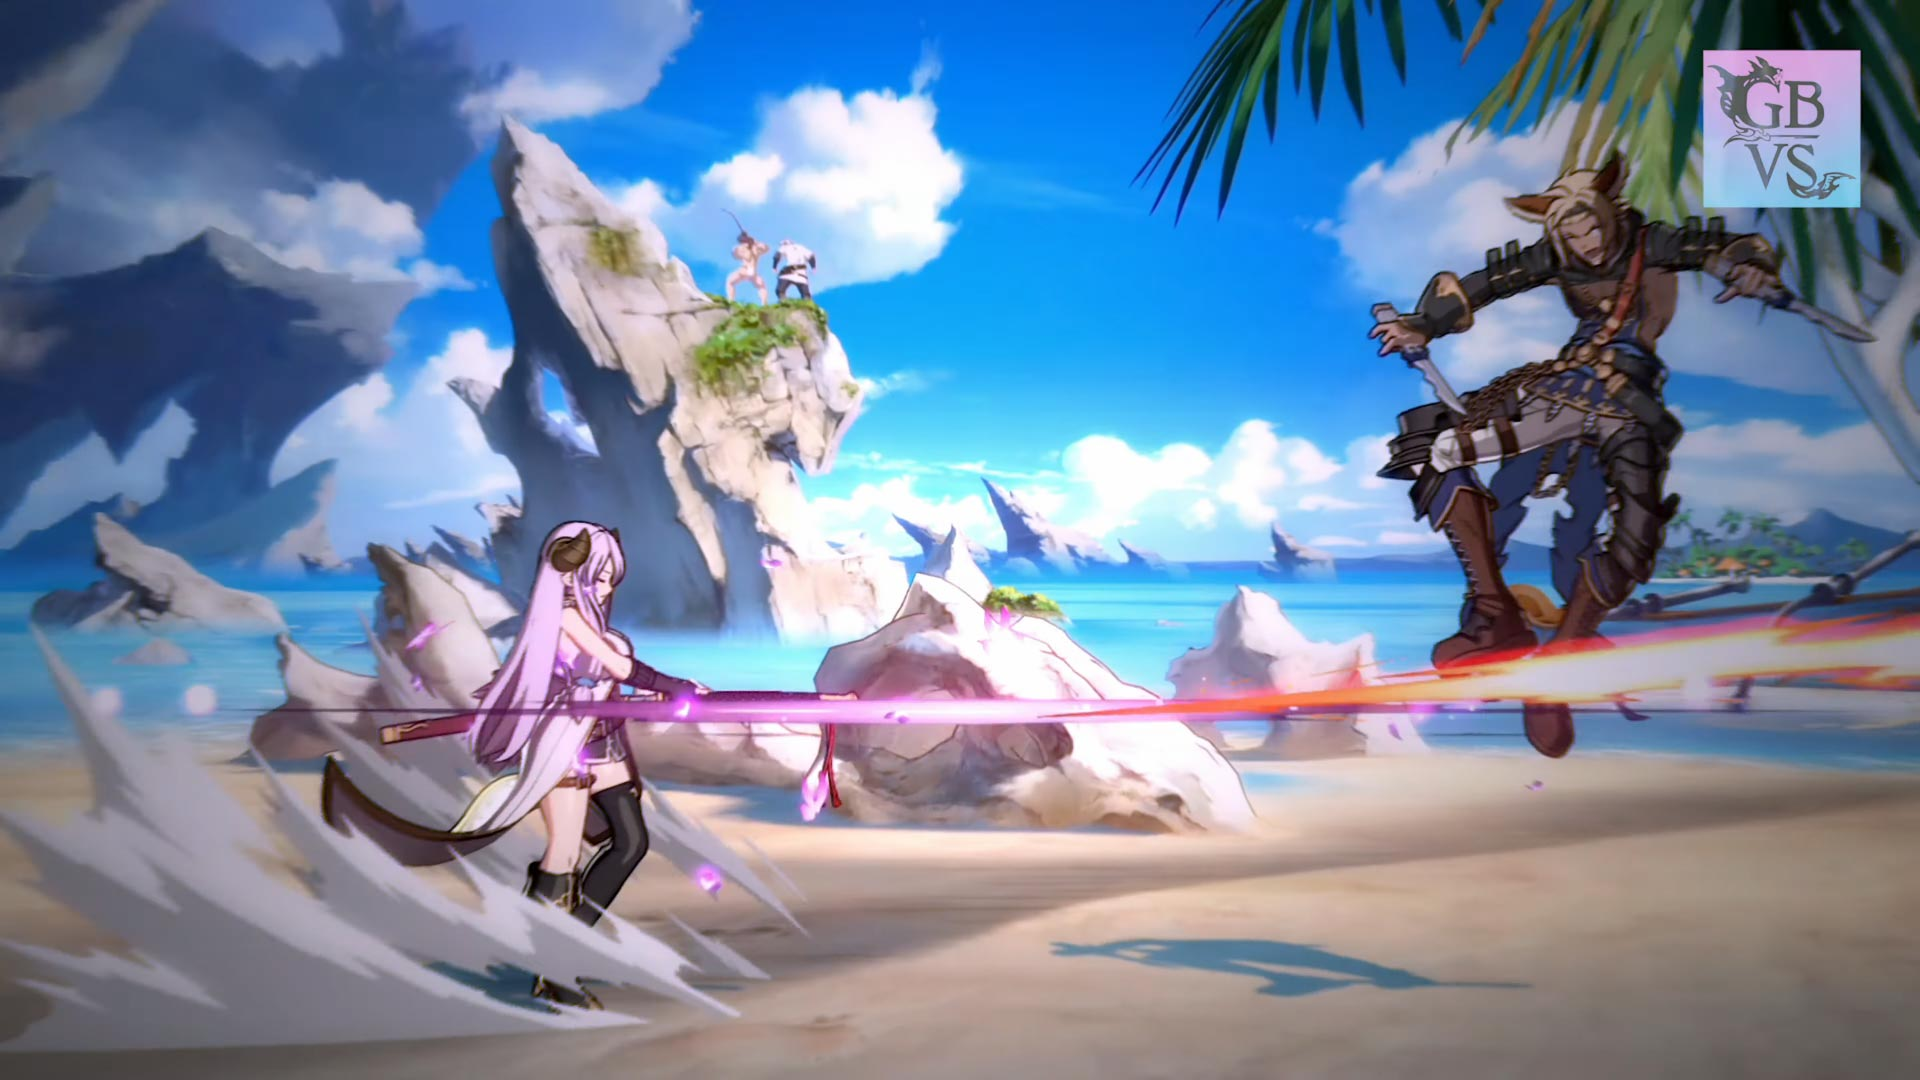 Granblue Fantasy Versus Narmaya Trailer Gallery 4 out of 12 image gallery